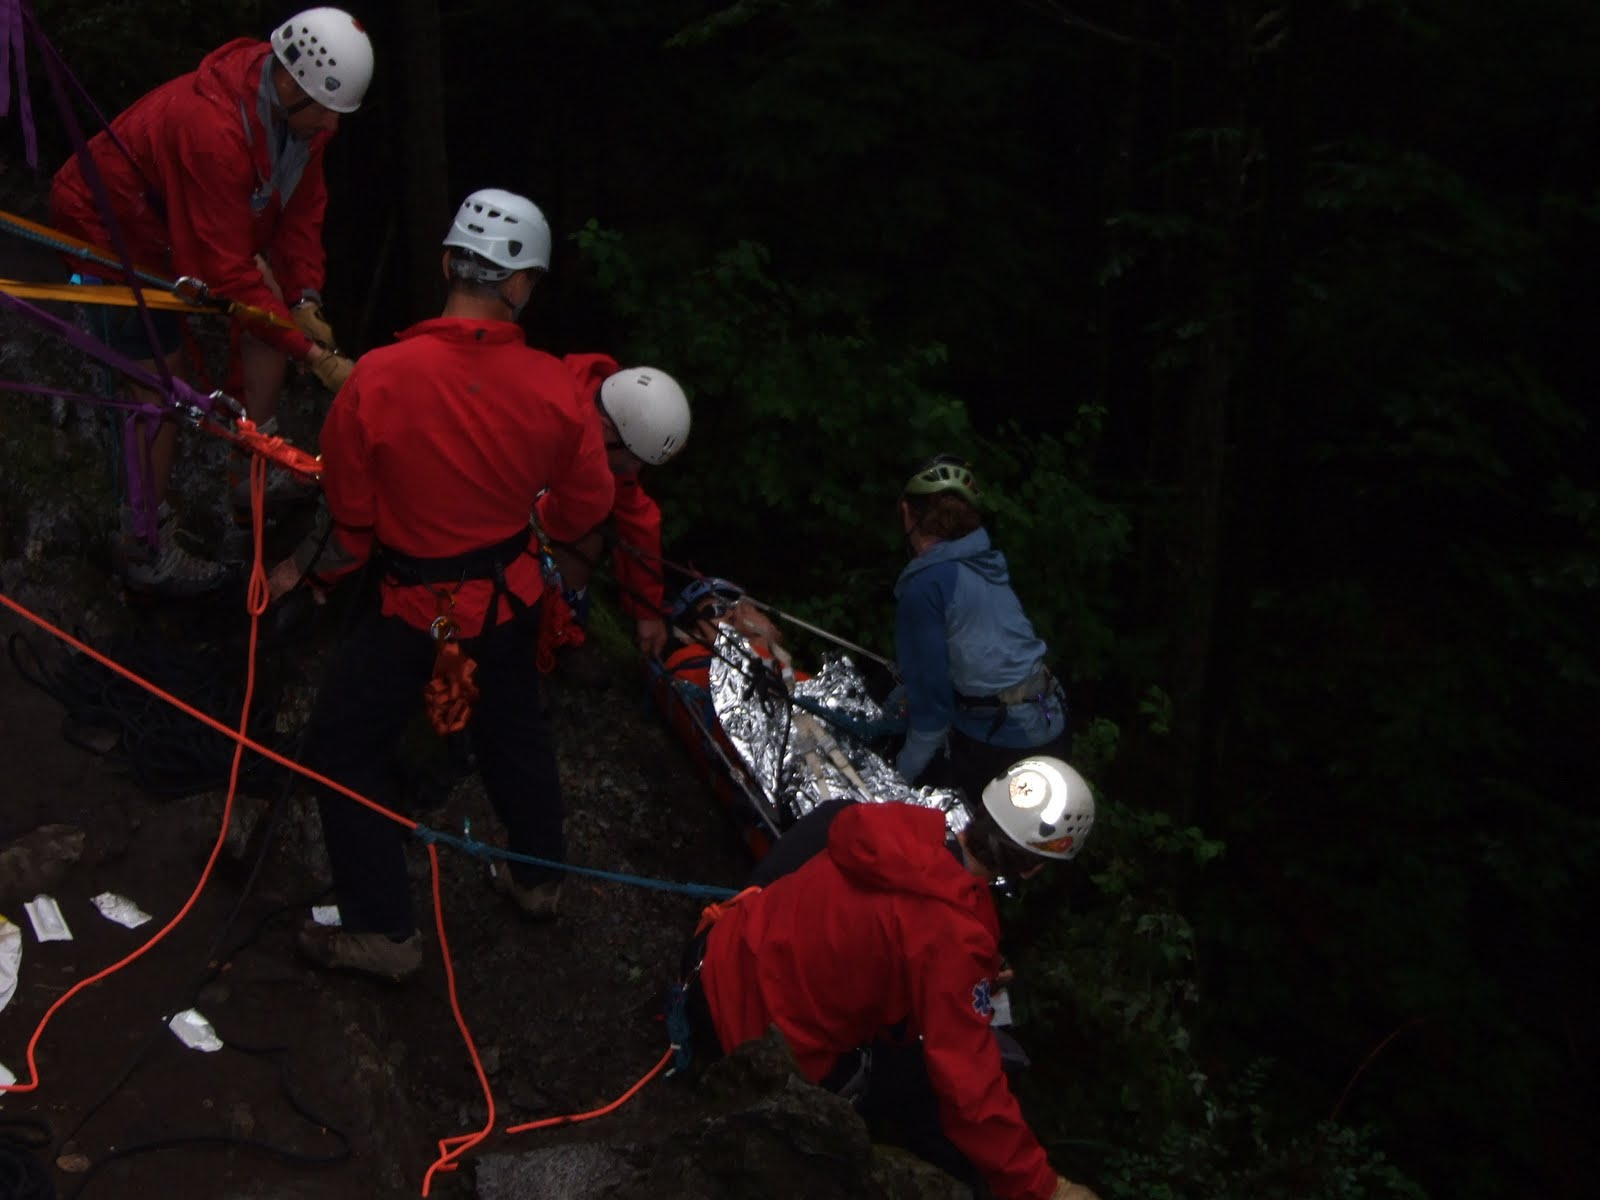 Rescue 911 at Little si!